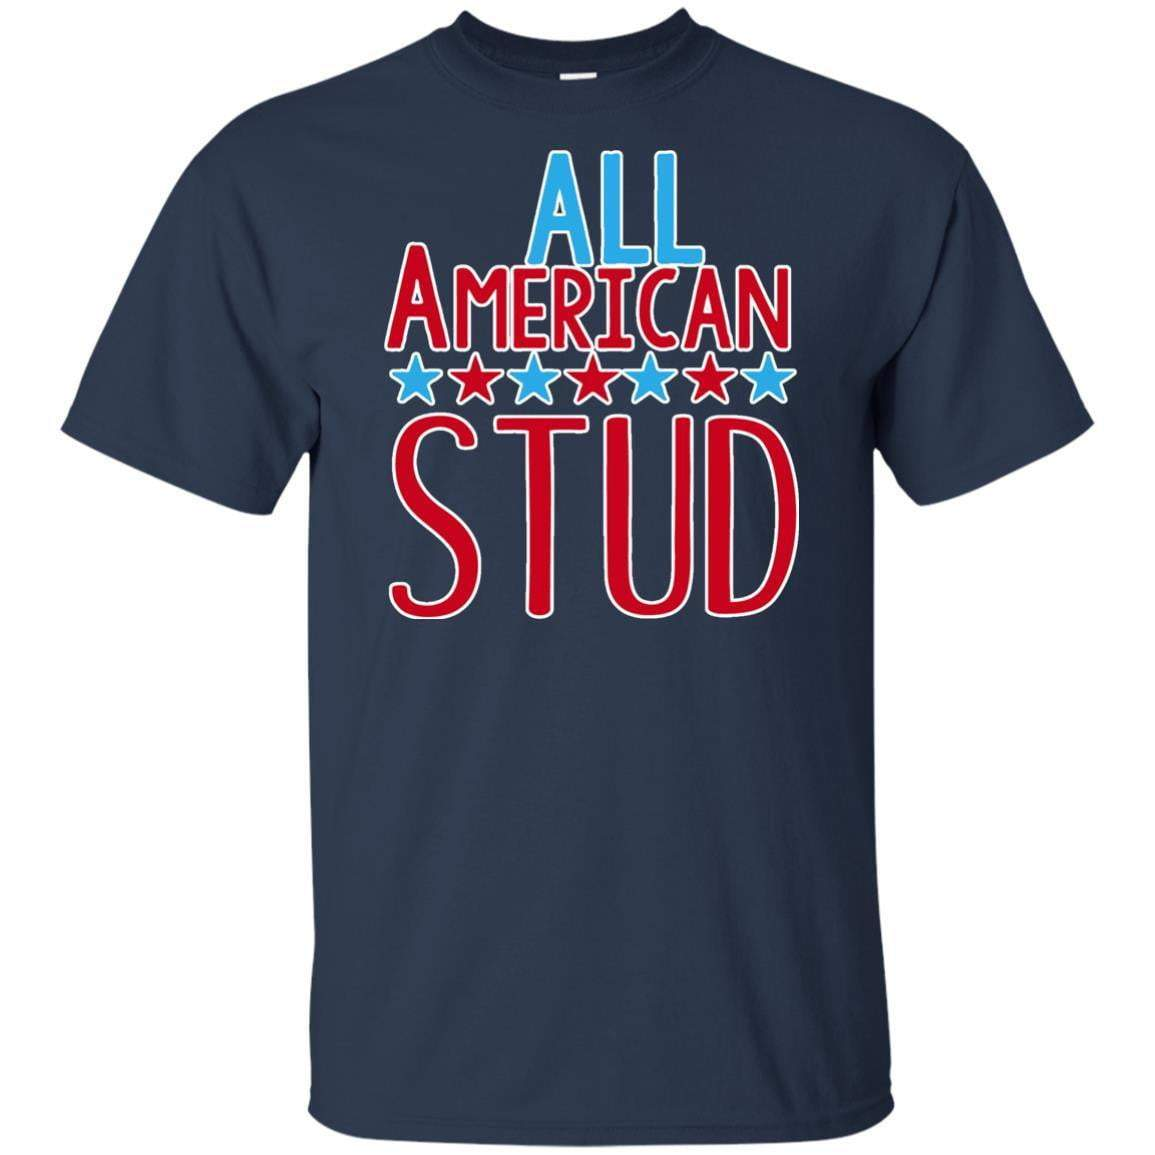 ALL AMERICAN STUD KIDS